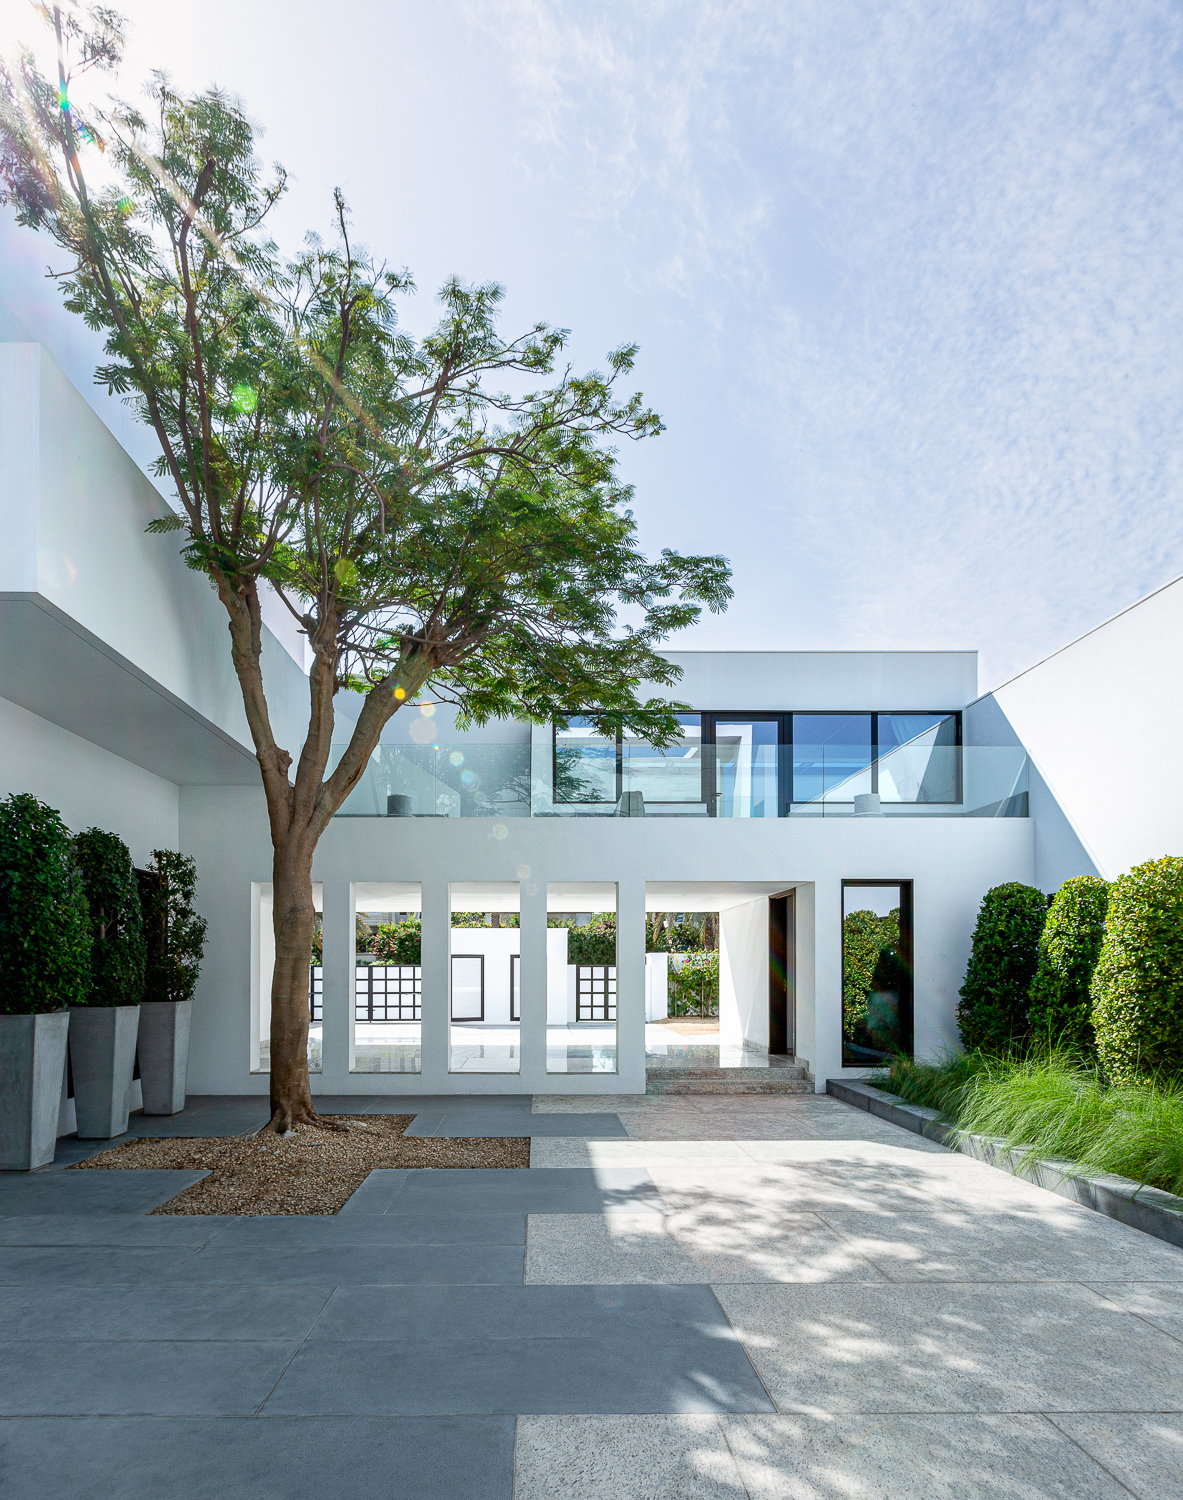 Residential Building Photography, villa courtyard in Dubai by international Architectural Photographer Ella Bessette.